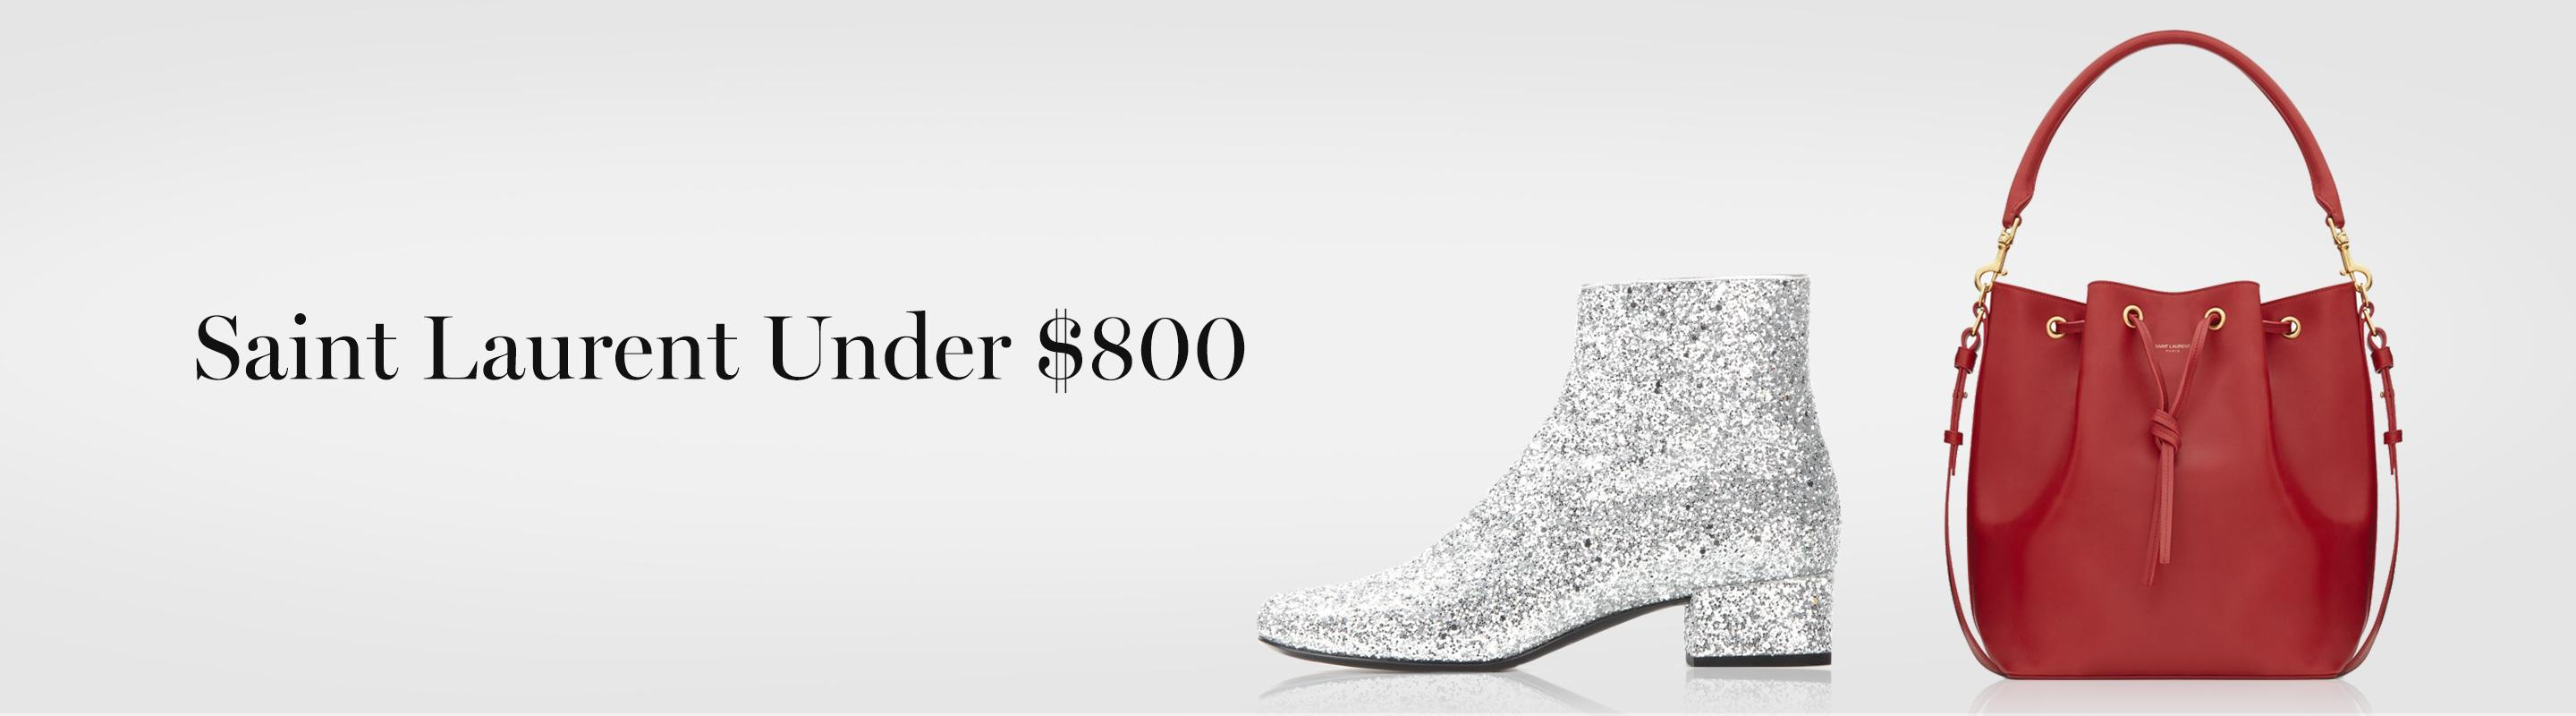 Saint Laurent Under $800